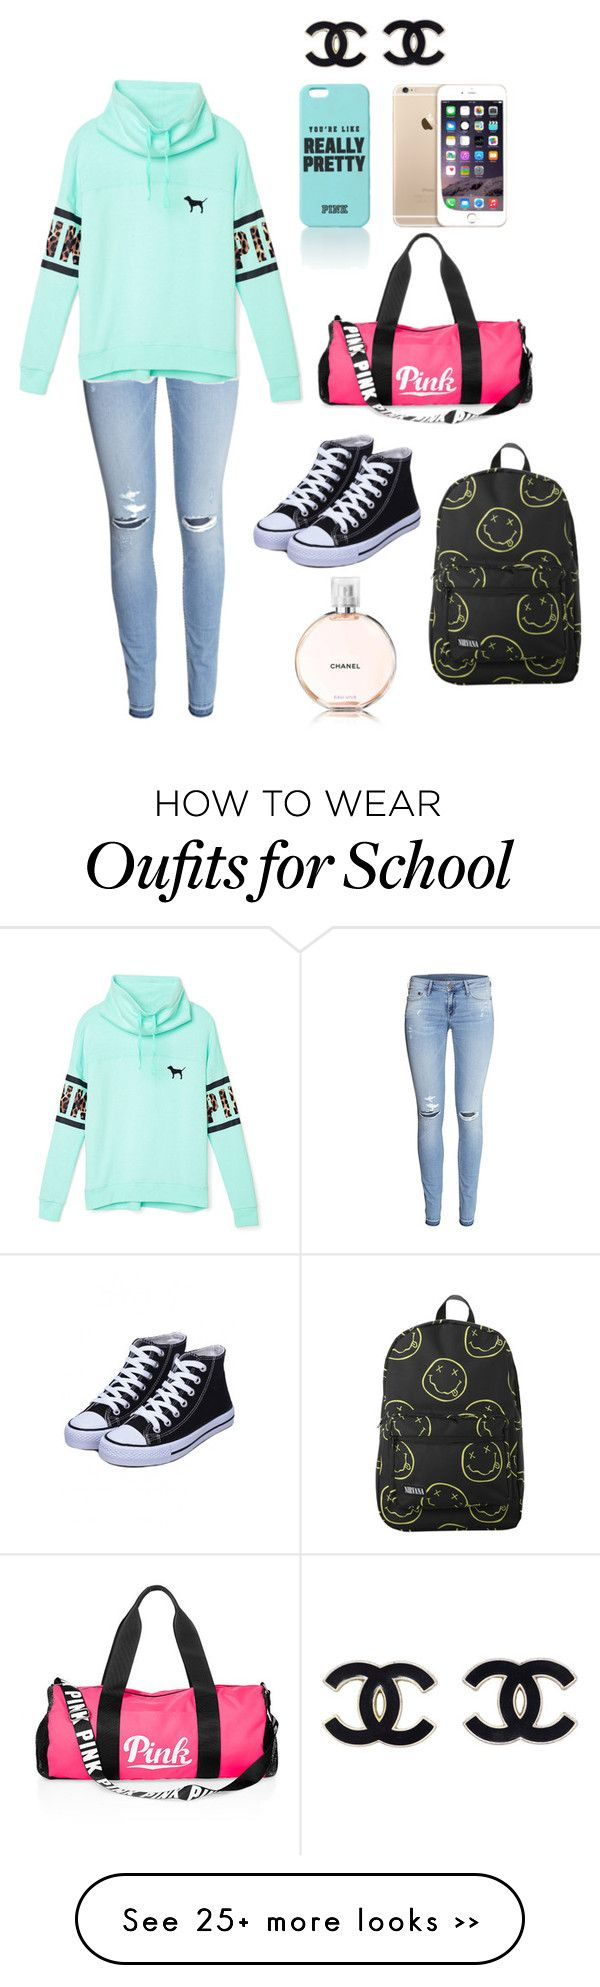 U0026quot;Schoolu0026quot; by savannahroach95 on Polyvore featuring Hu0026M Victoriau0026#39;s Secret PINK and Chanel | Pink ...